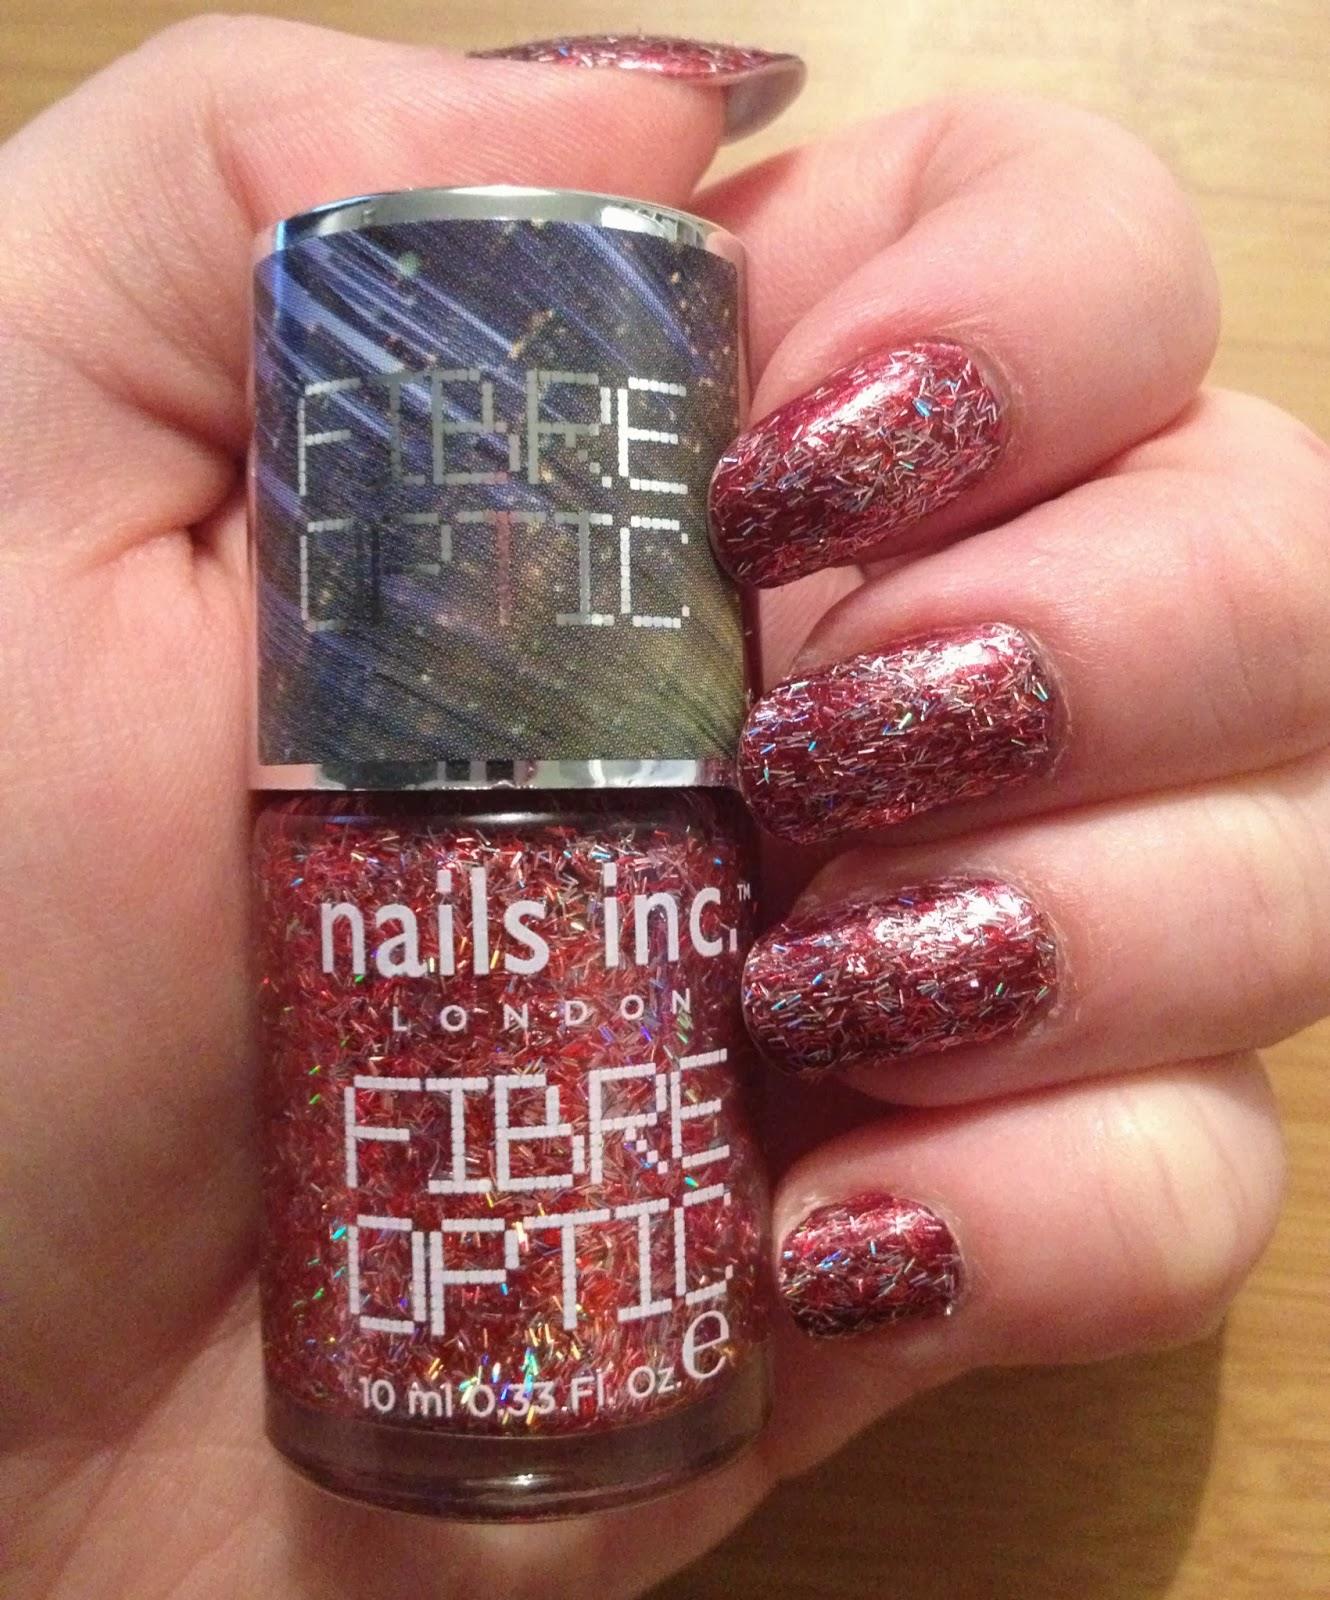 Nails Inc Fibre Optic Nail Polish Belgravia Place